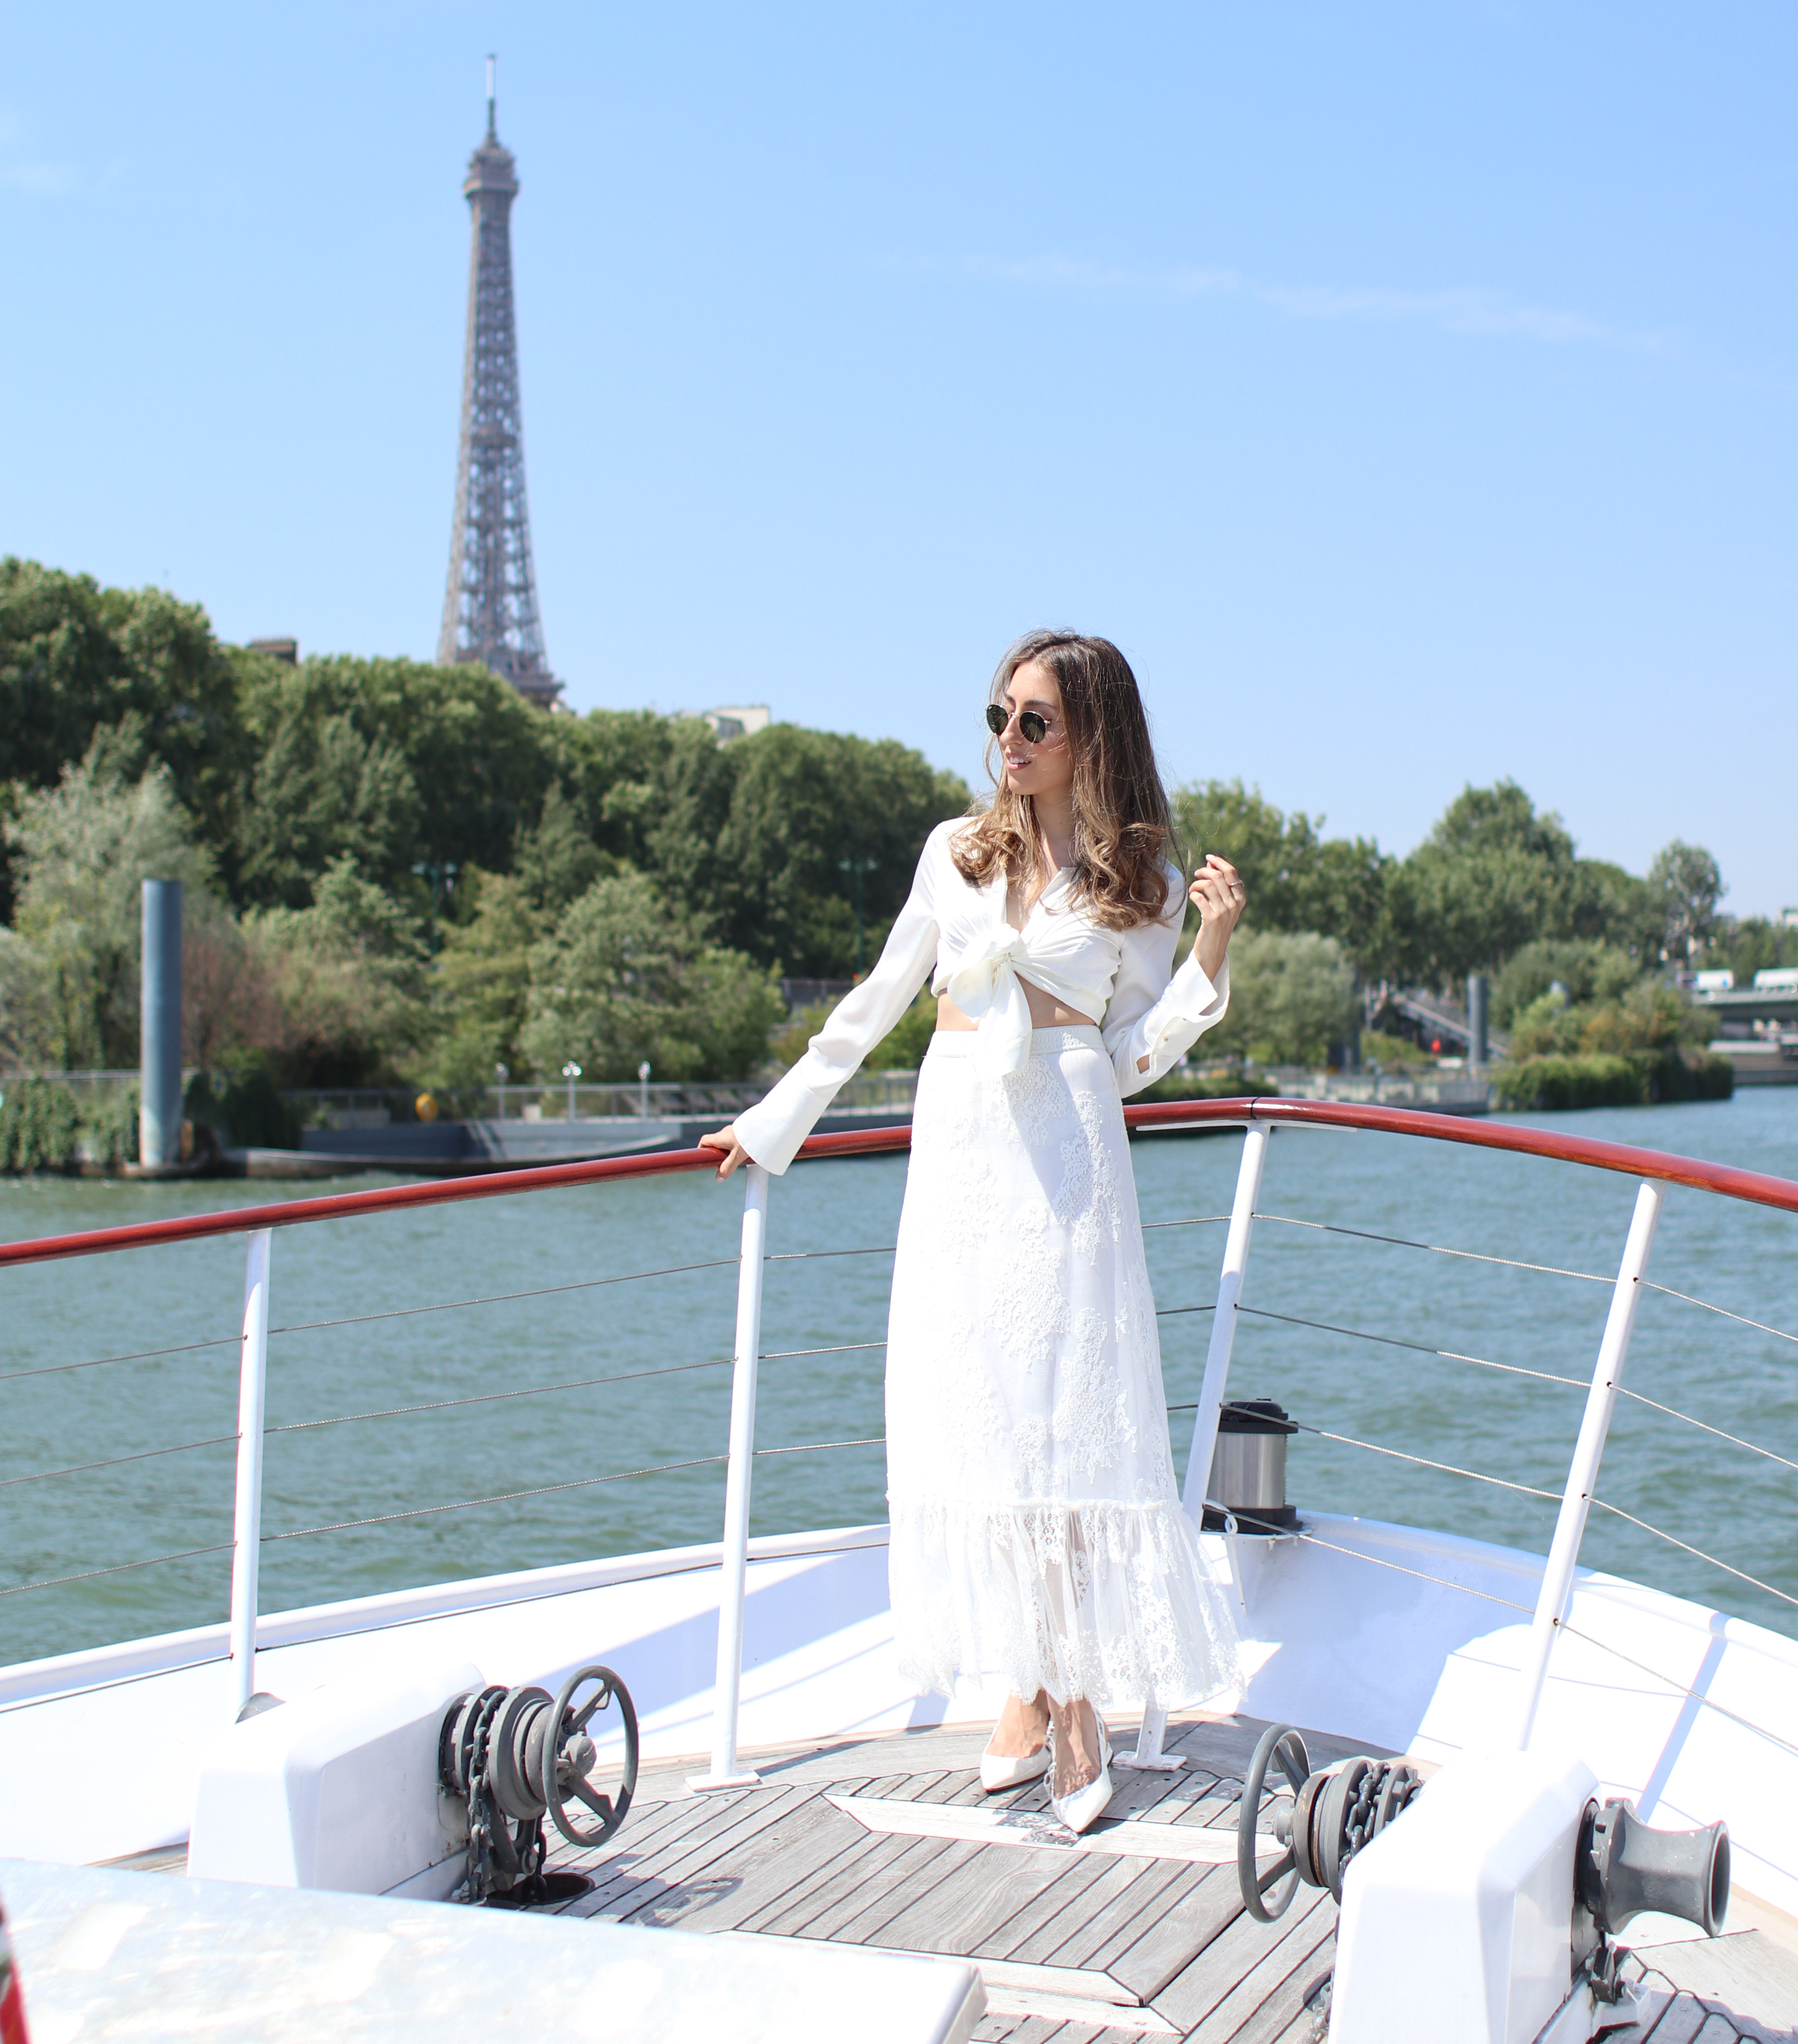 ma-petite-sphere-beauty-ninaricci-princesslife-ninaricciparfums-bellaninaluna-paris-panama-lunch-riosena-toureiffel-riverseine